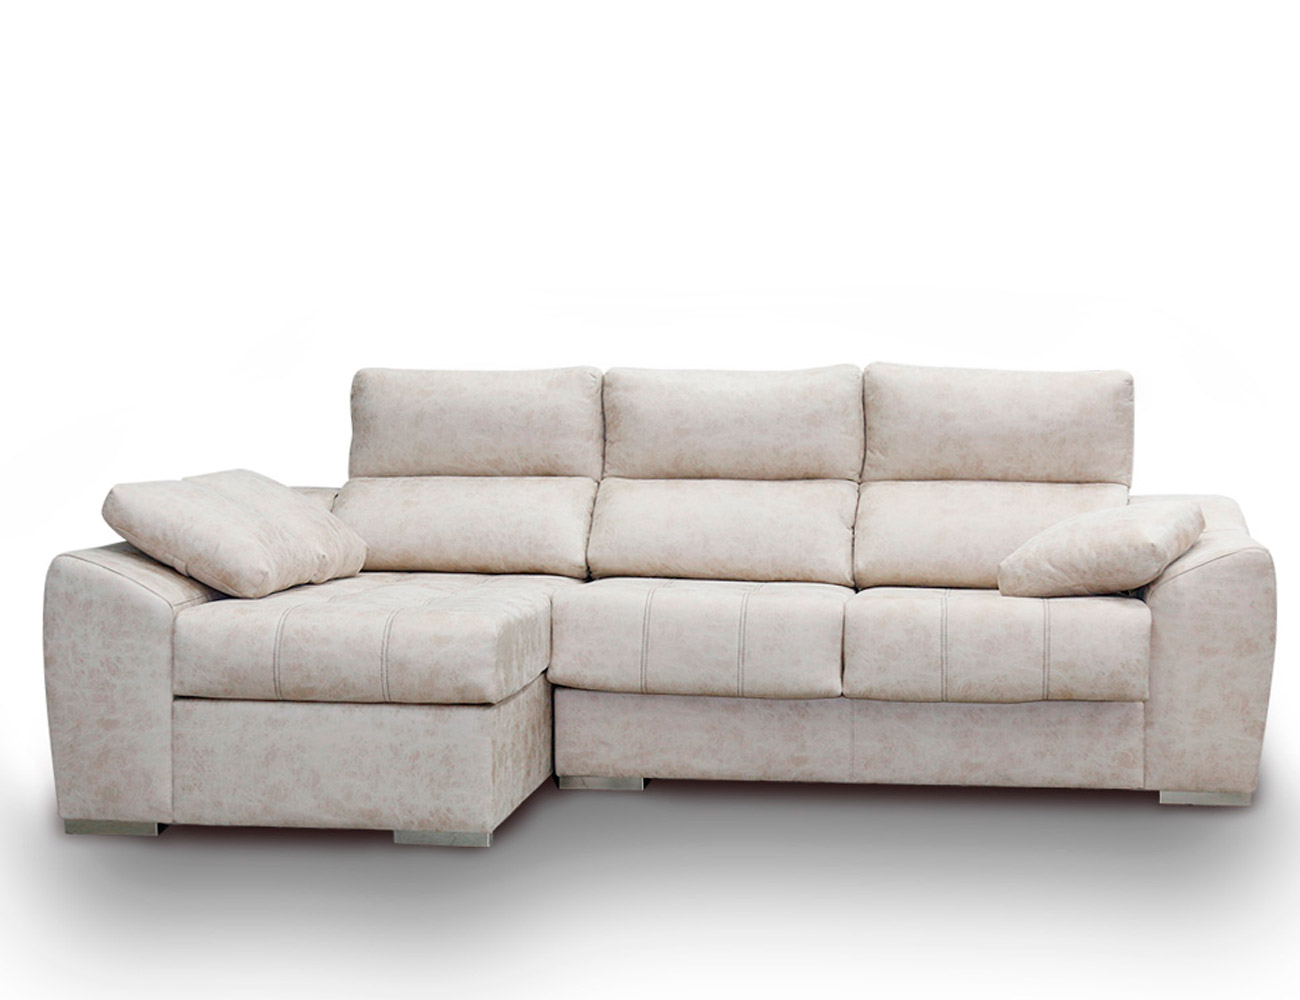 Sofa chaiselongue anti manchas beig blanco7